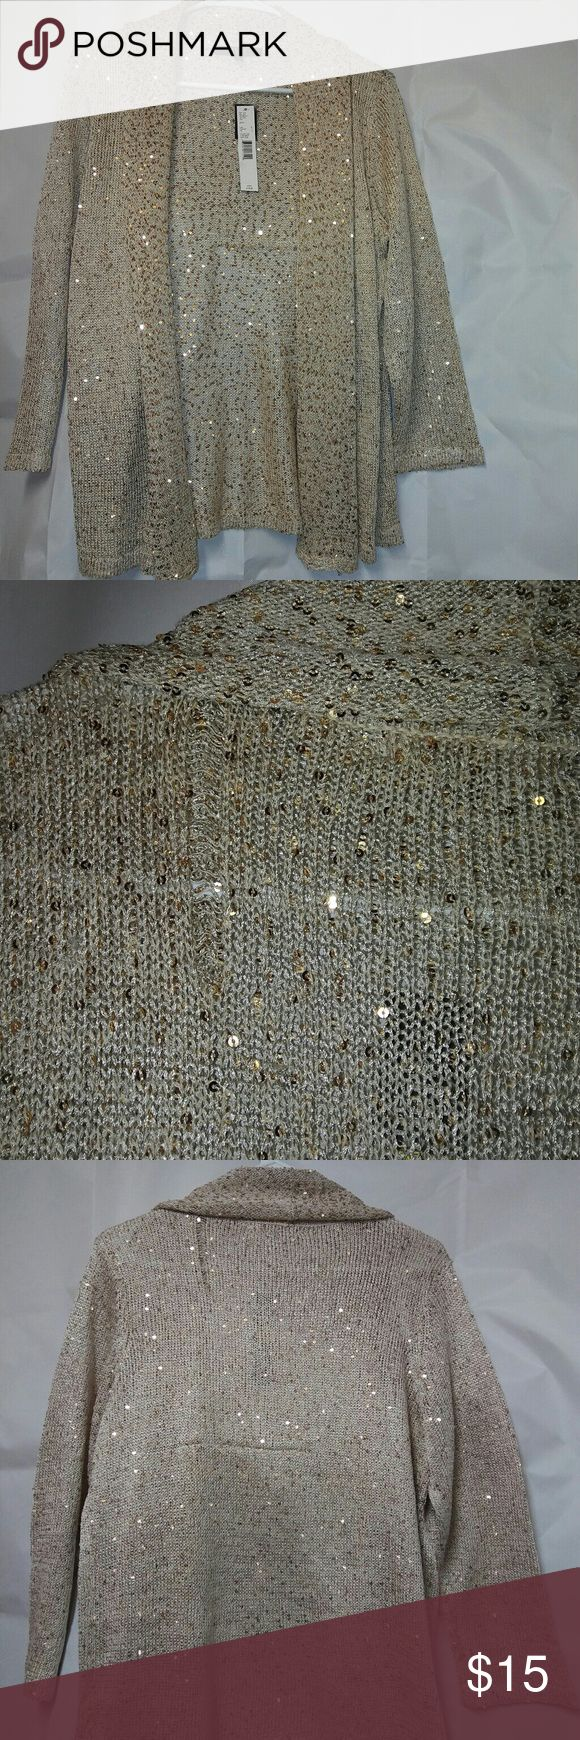 Gold Sequin Cardigan Alex Marie NWT Gold Sequin Cardigan Alex Marie NWT.  Please see pictures.  On the back it looks like some thread pulled.  It's very beautiful and the sequin makes it look really fancy. Alex Marie Sweaters Cardigans